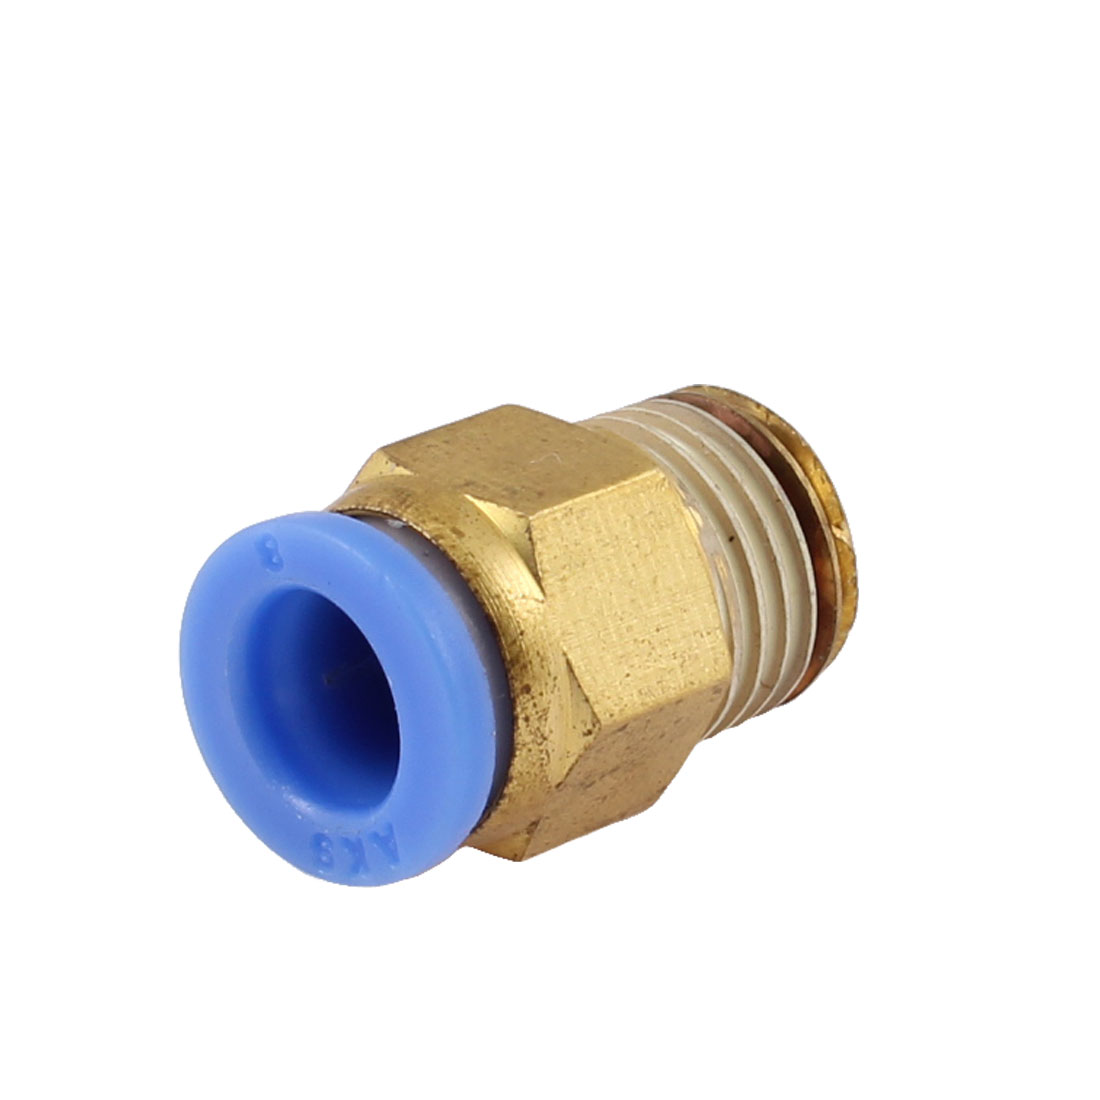 "8mm Tube Pneumatic Straight Quick Coupling 1/4"" PT Thread Brass Fittings"